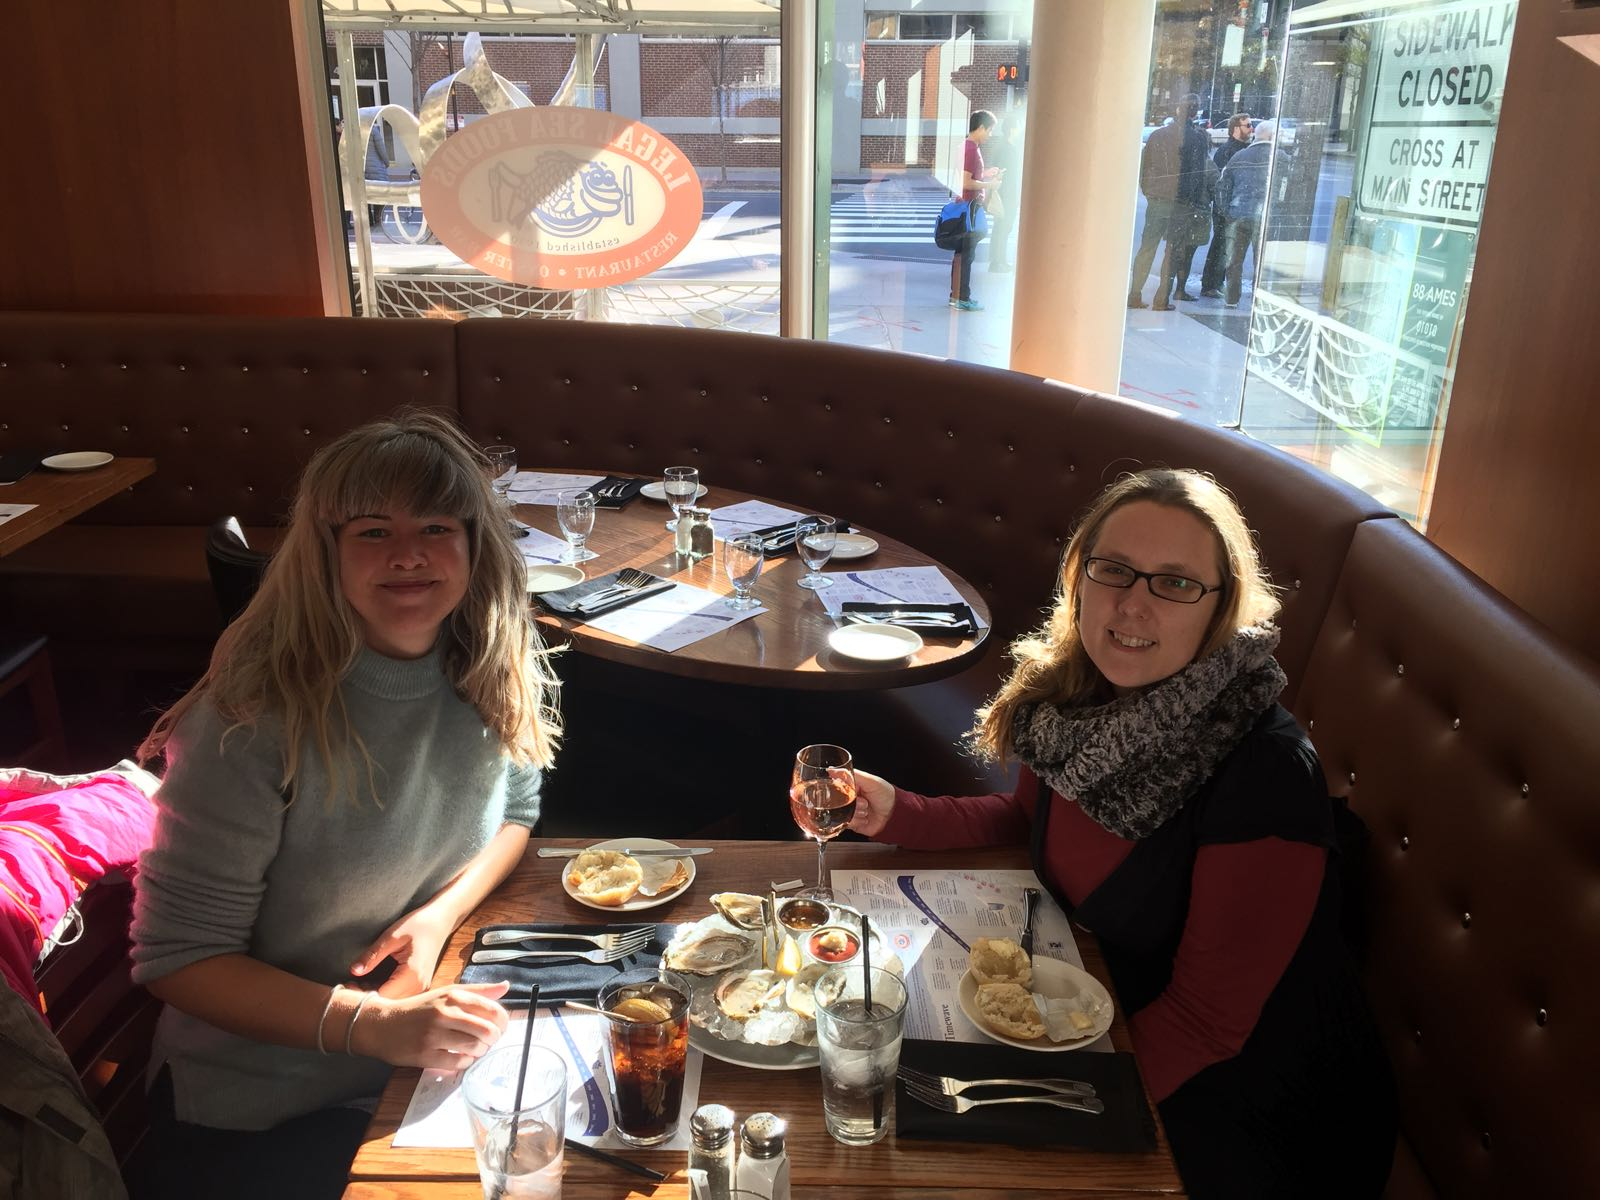 Nanna Schneidermann and Katrien Pype discussing project plans over lunch